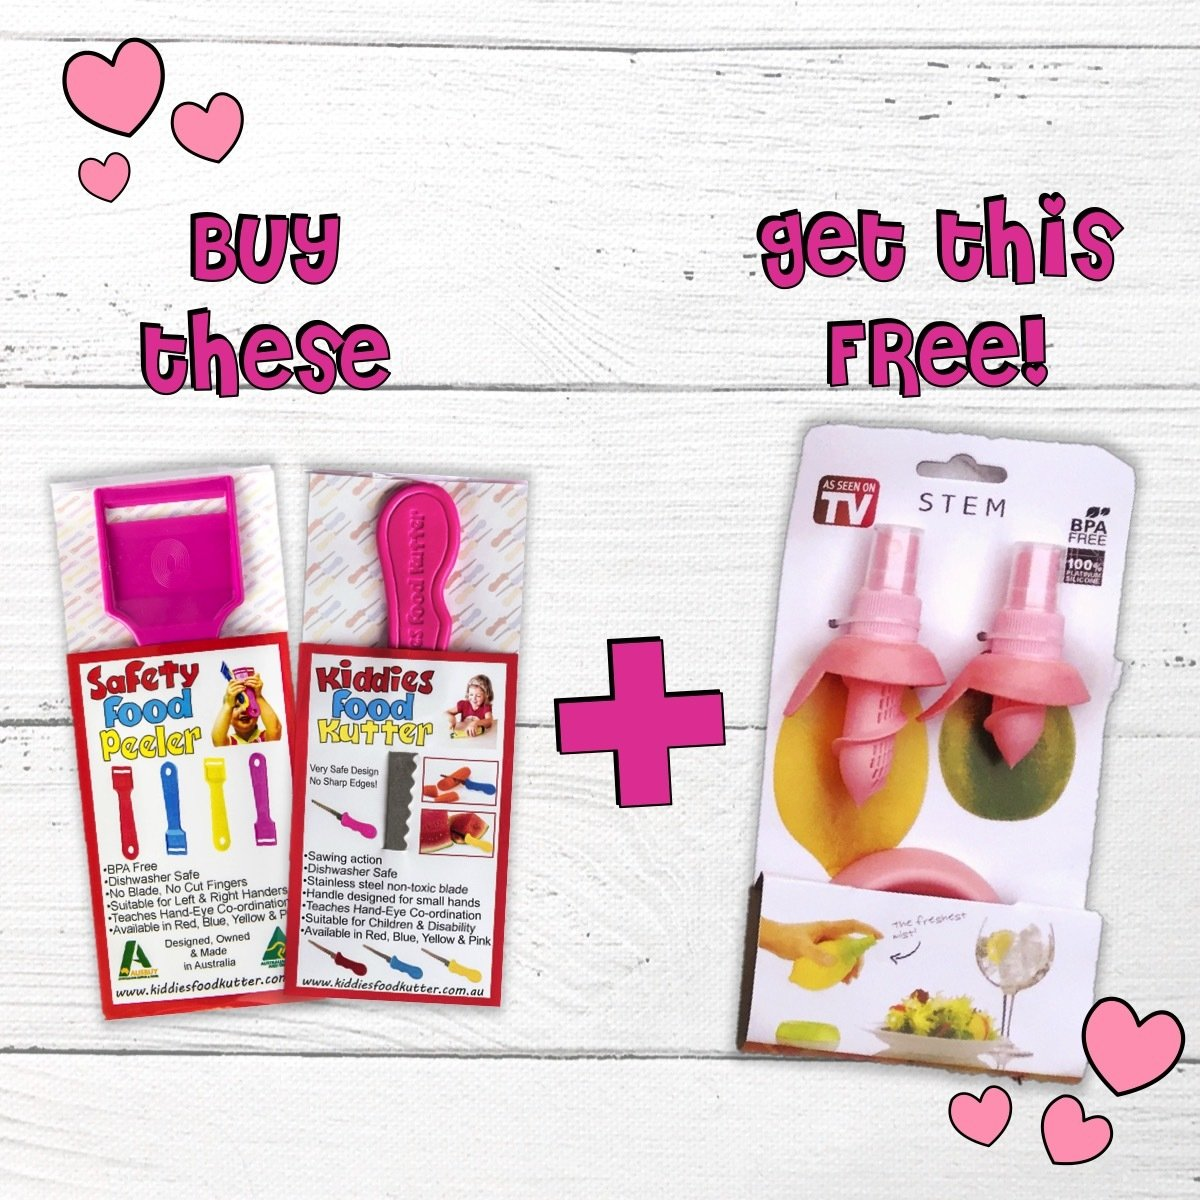 PINK PROMO! Free Citrus Wizz when you buy a PINK Kiddies Food Kutter & PINK Safety Food Peeler PINK PROMO